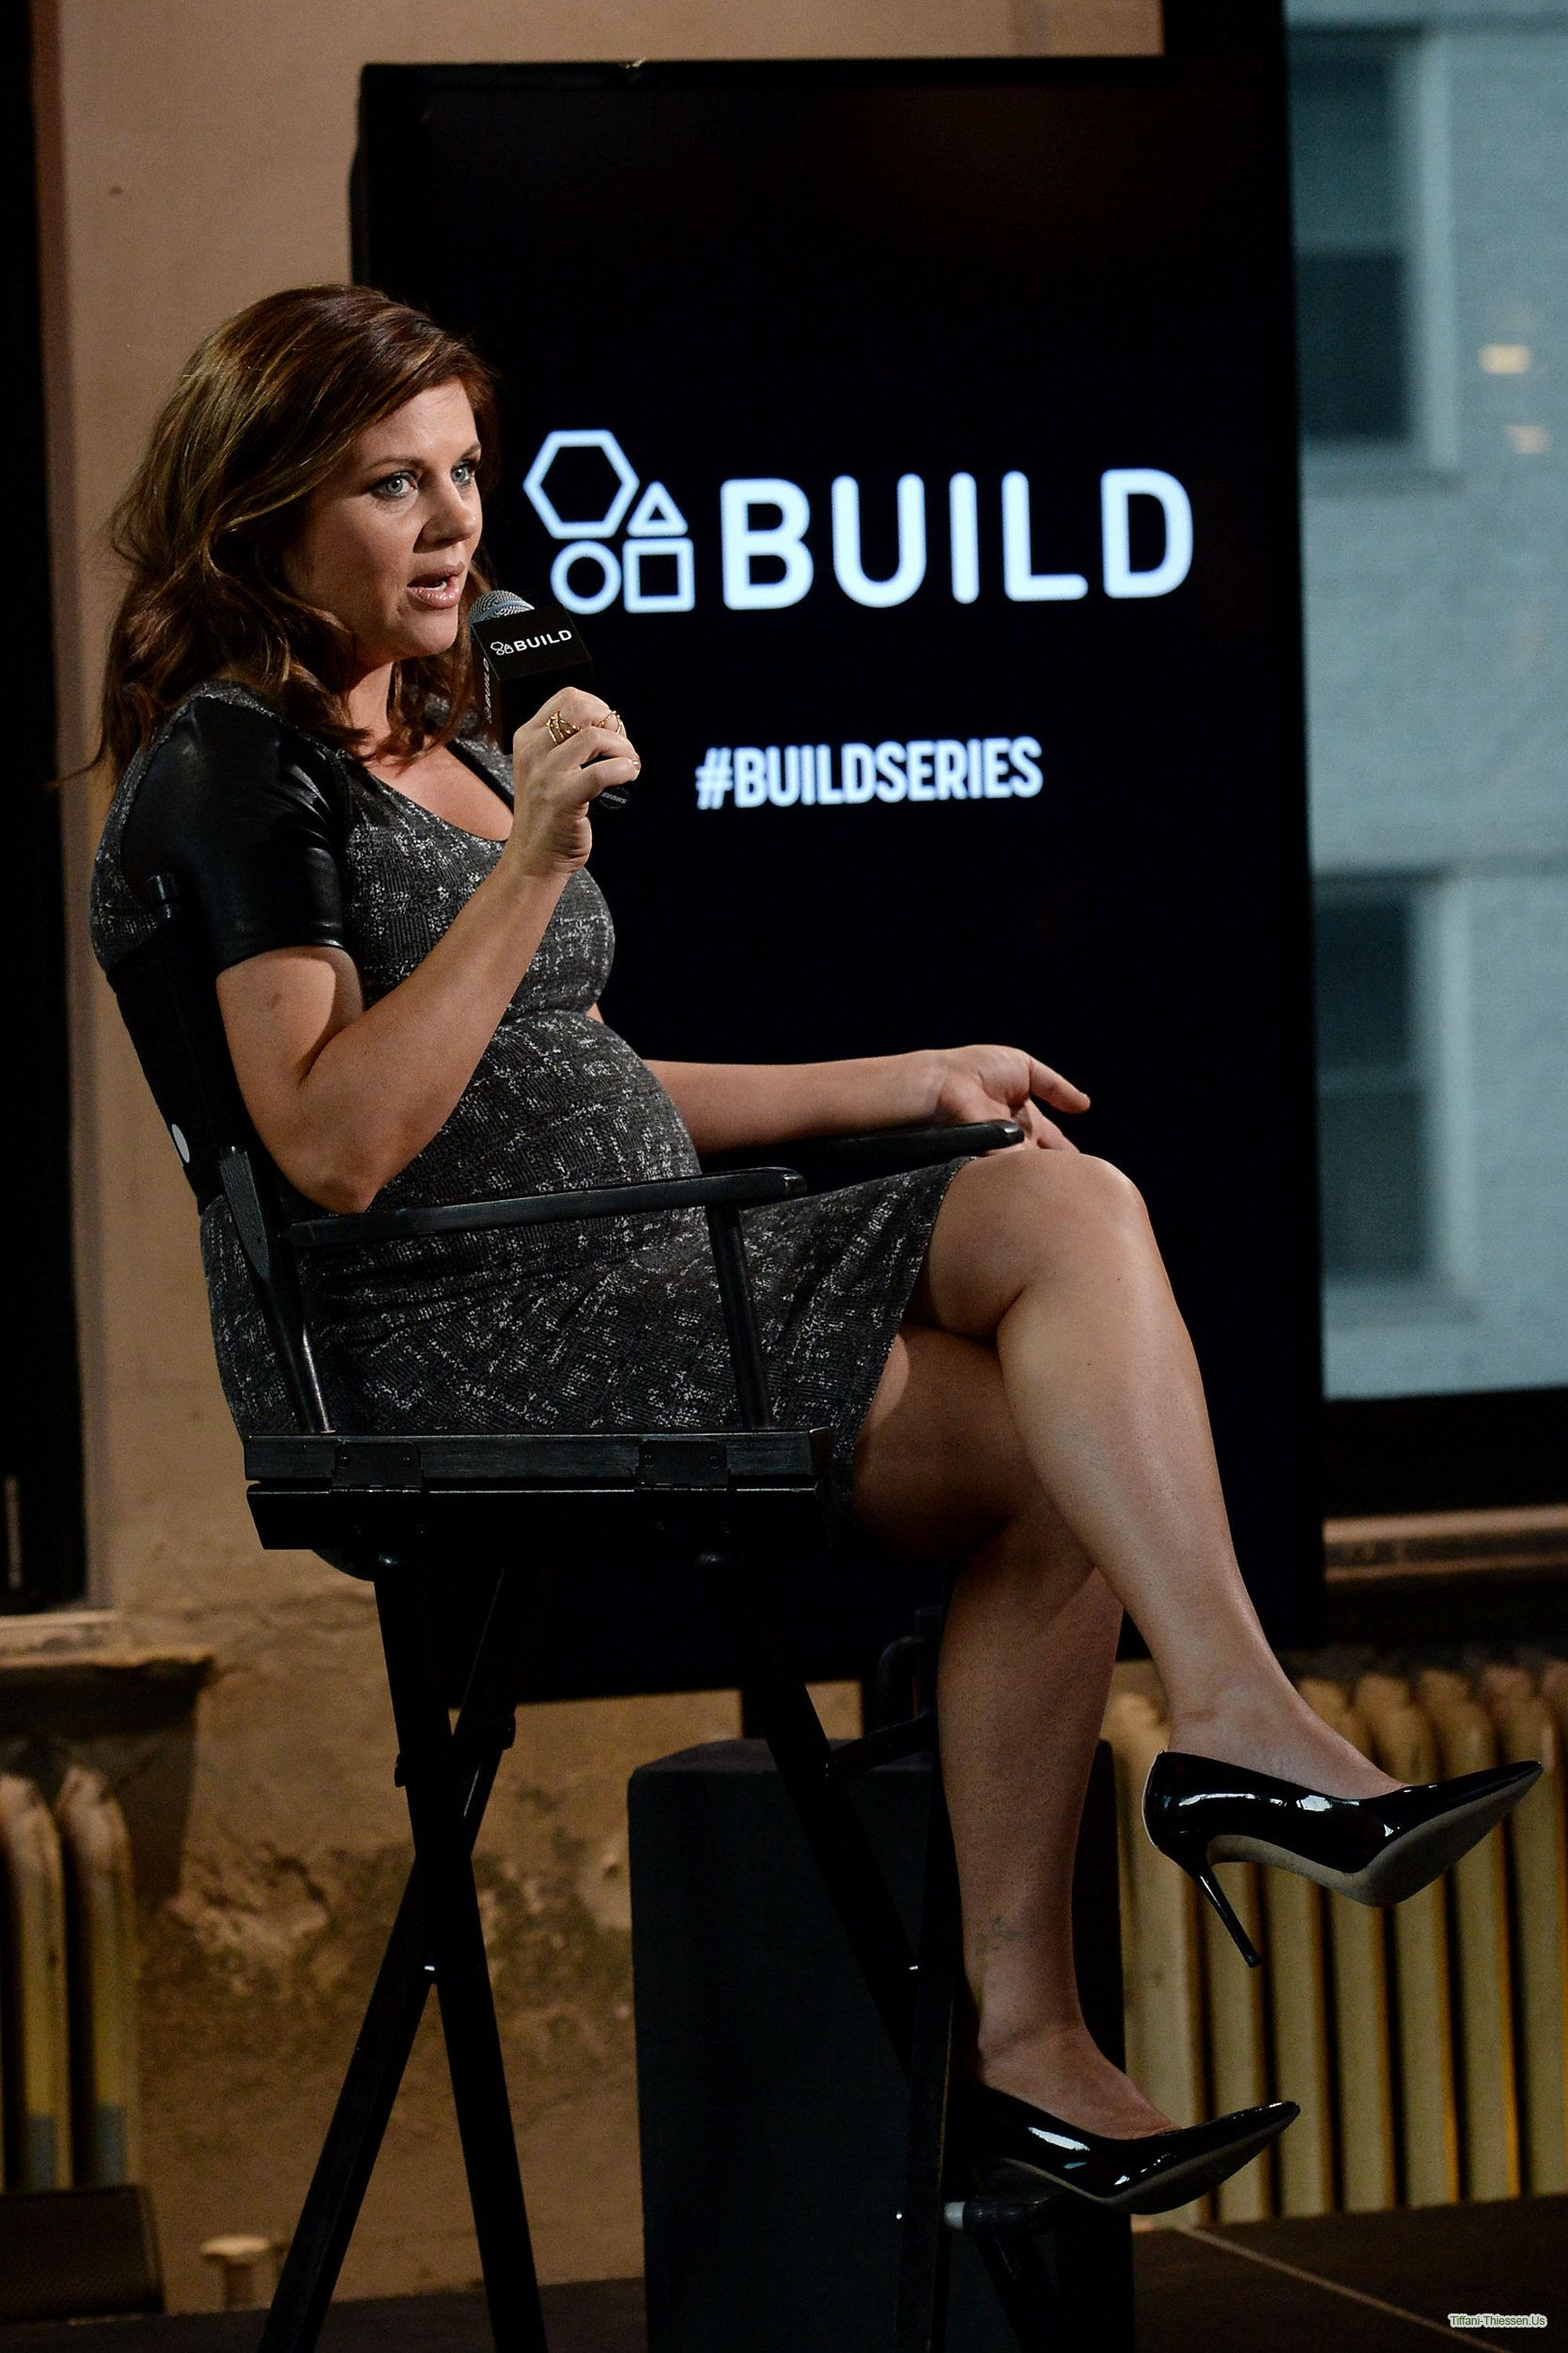 Tiffani Thiessen attends AOL BUILD Speaker Series at AOL Studios in New York on February 24, 2015 in New York City.